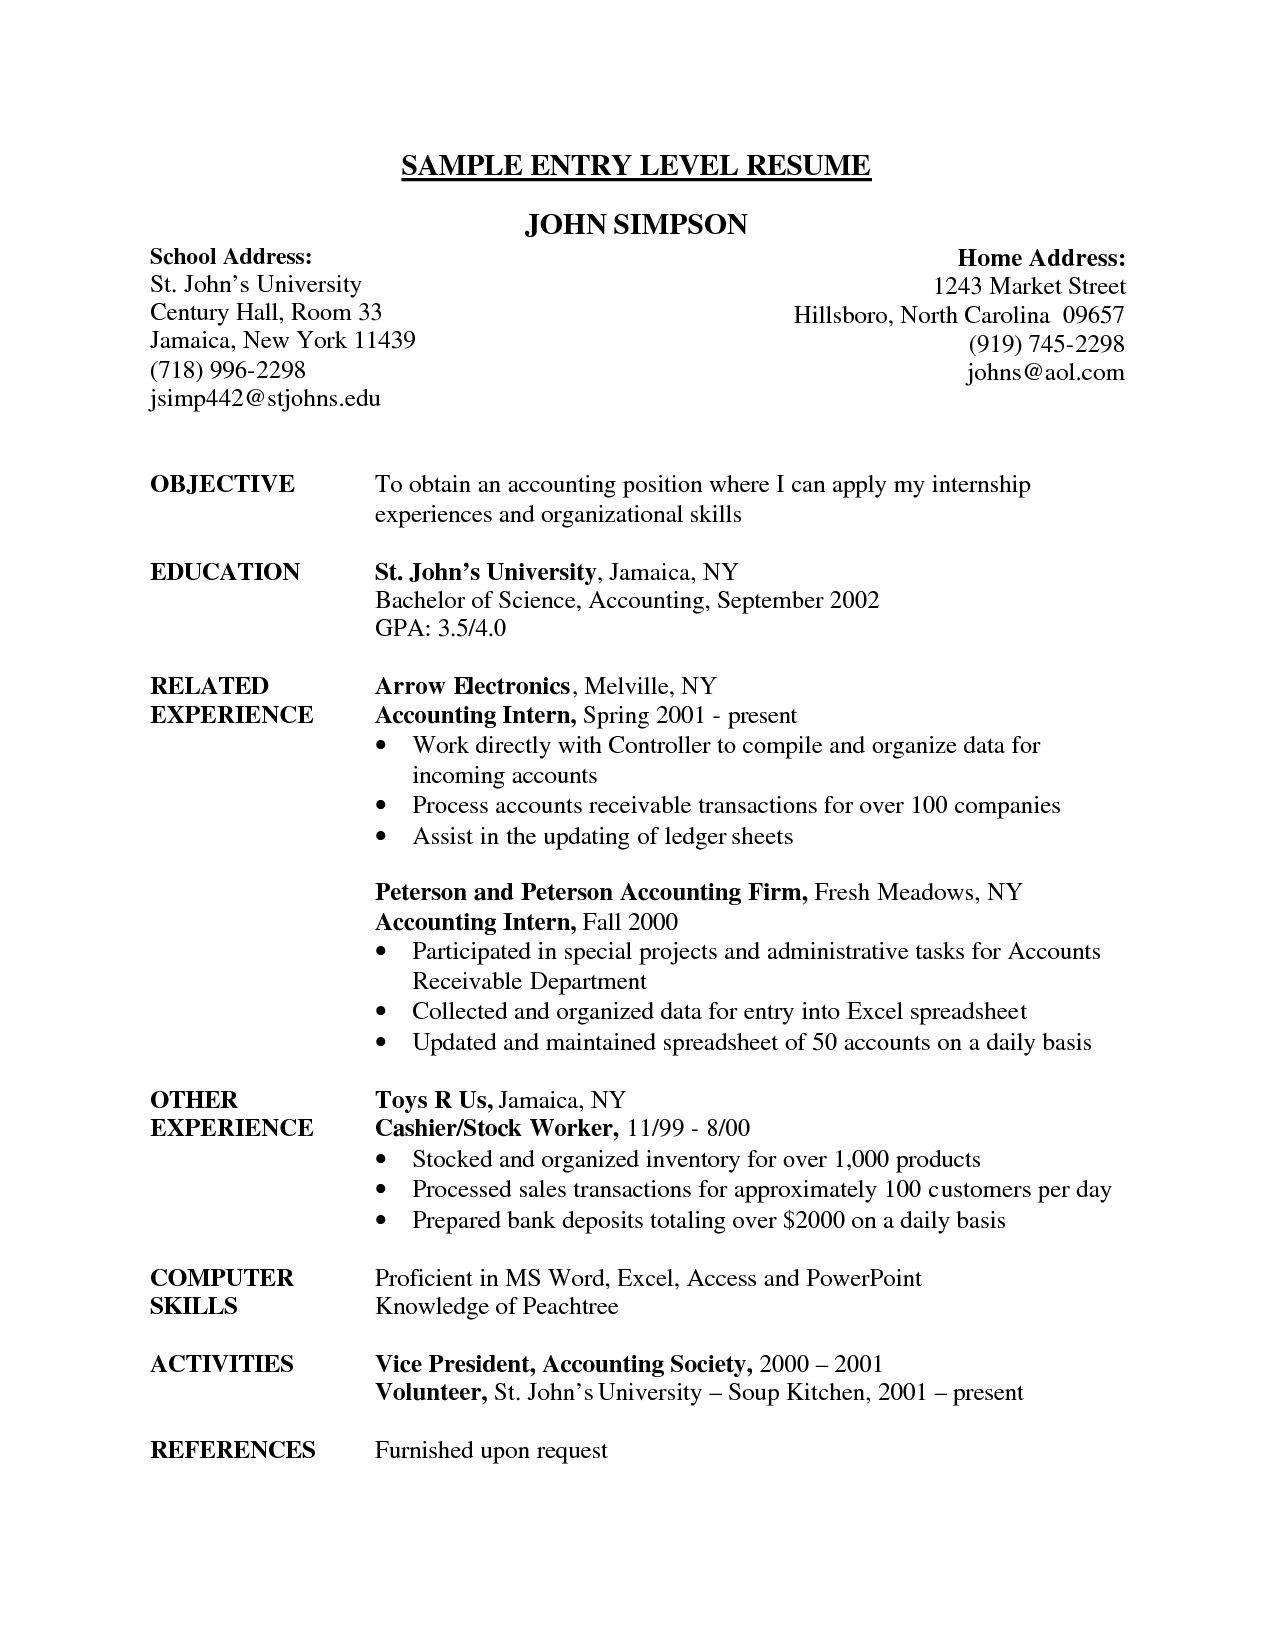 resume format entry level | 1-resume examples | sample resume